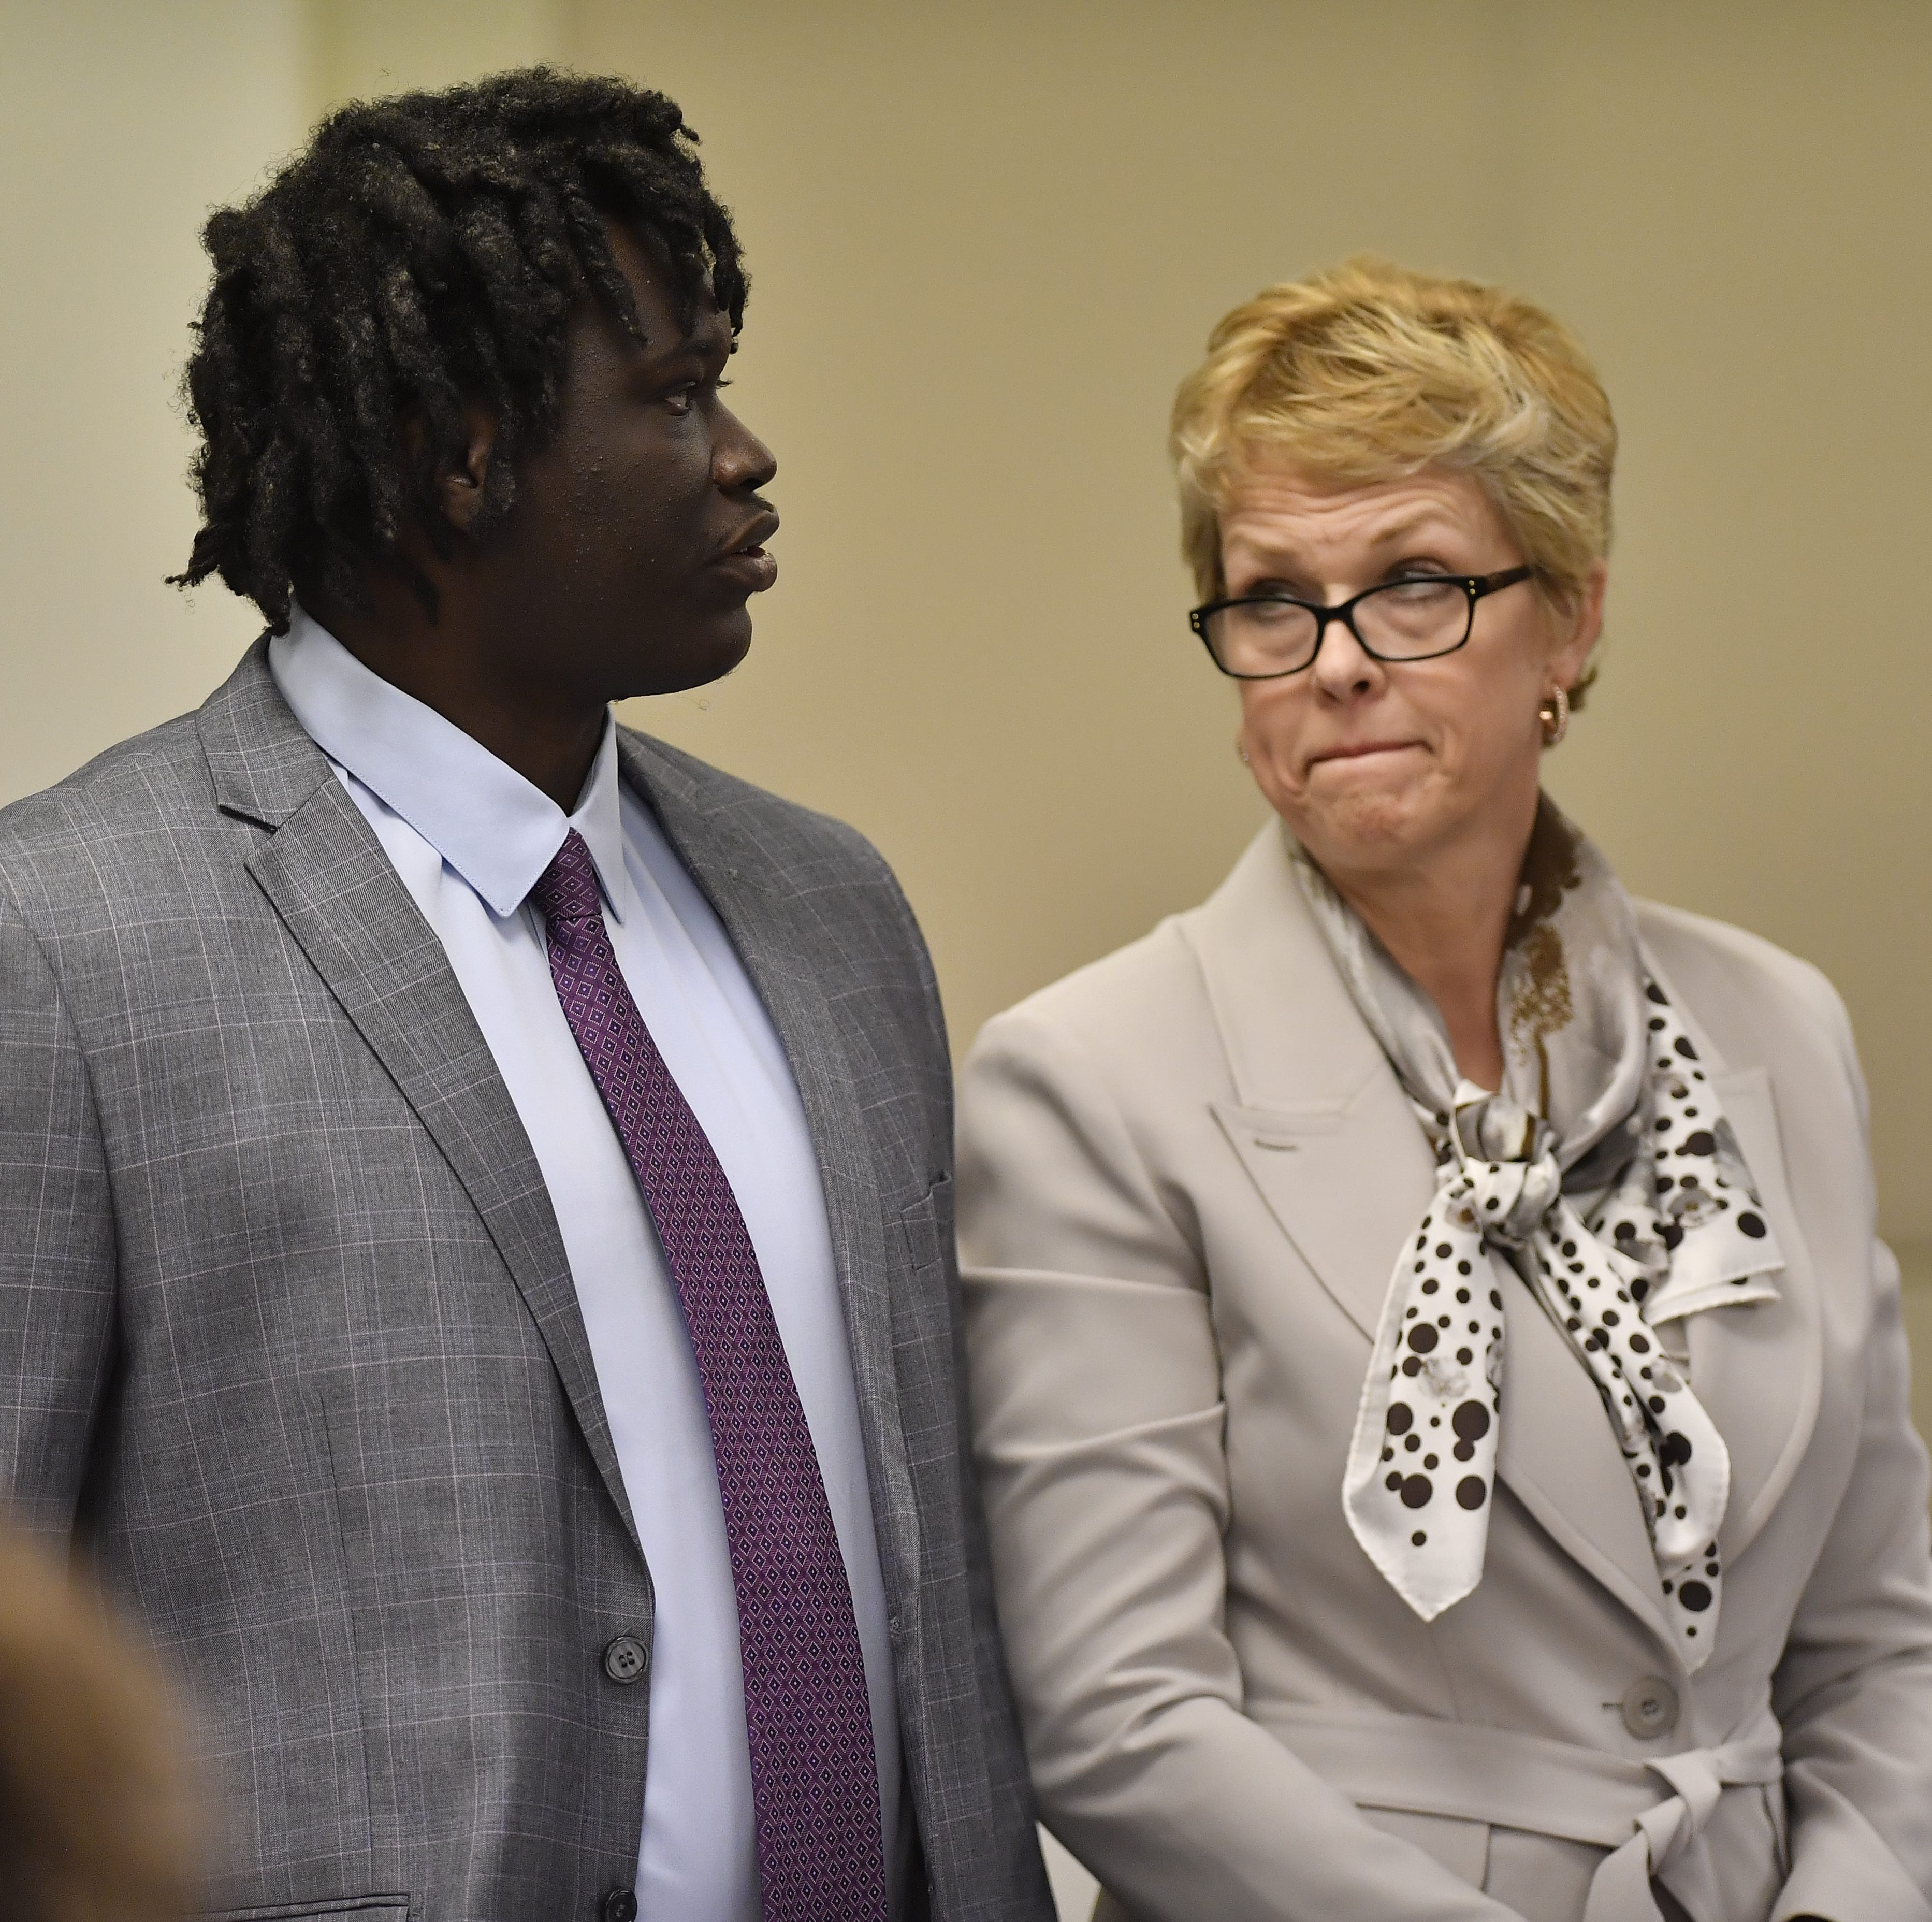 Emanuel Samson wanted to kill 'a minimum of 10 white churchgoers,' prosecutor says at trial